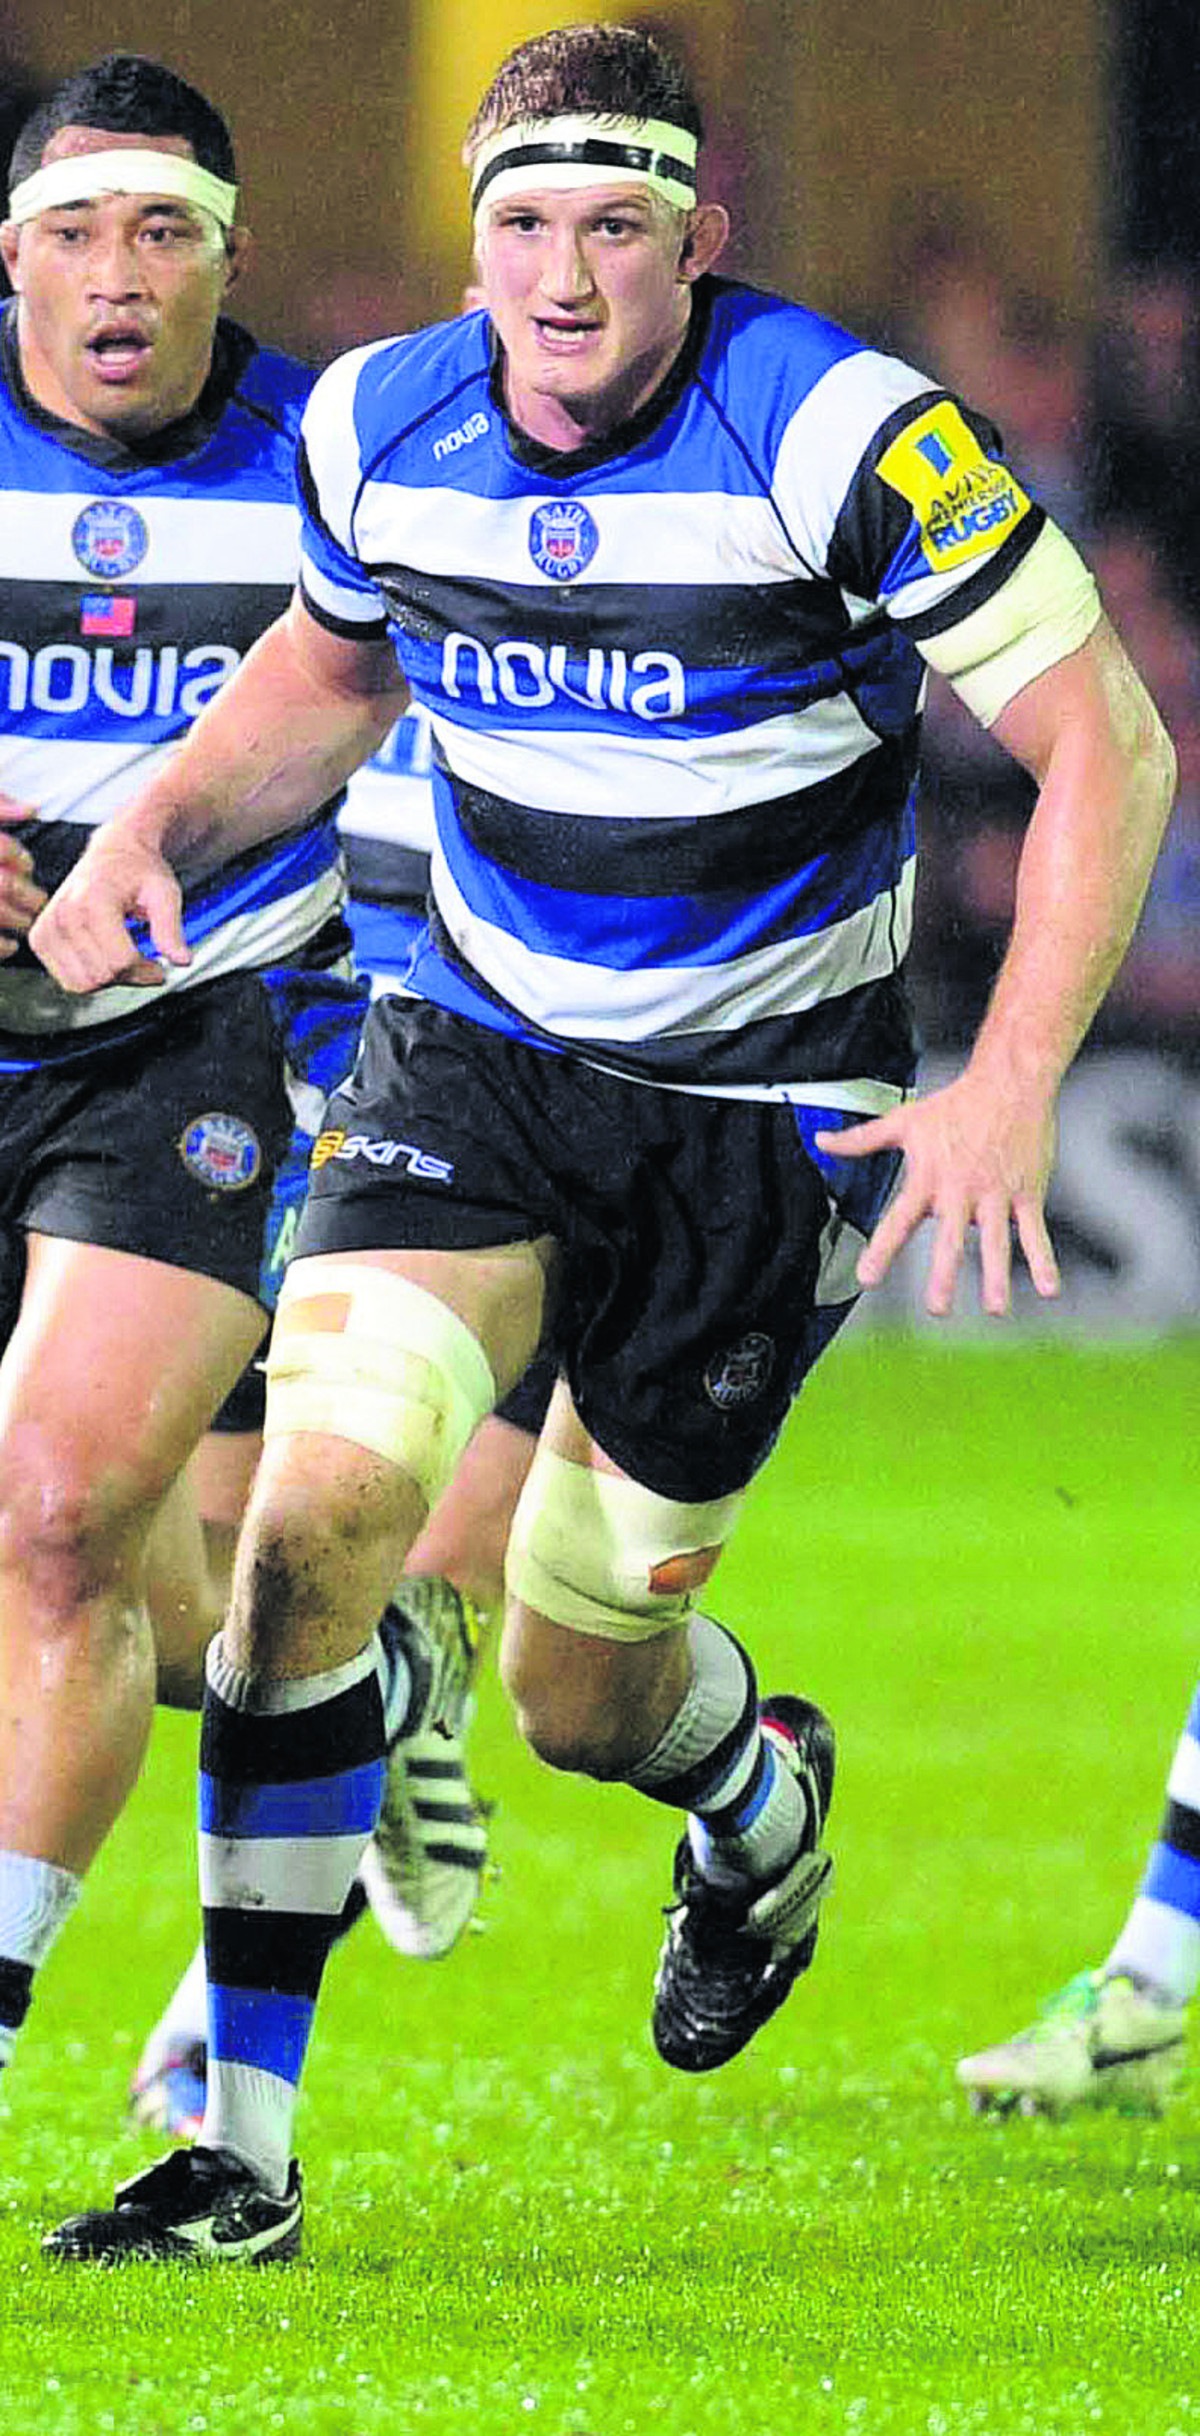 BATH RUGBY: Skipper Hooper signs extension